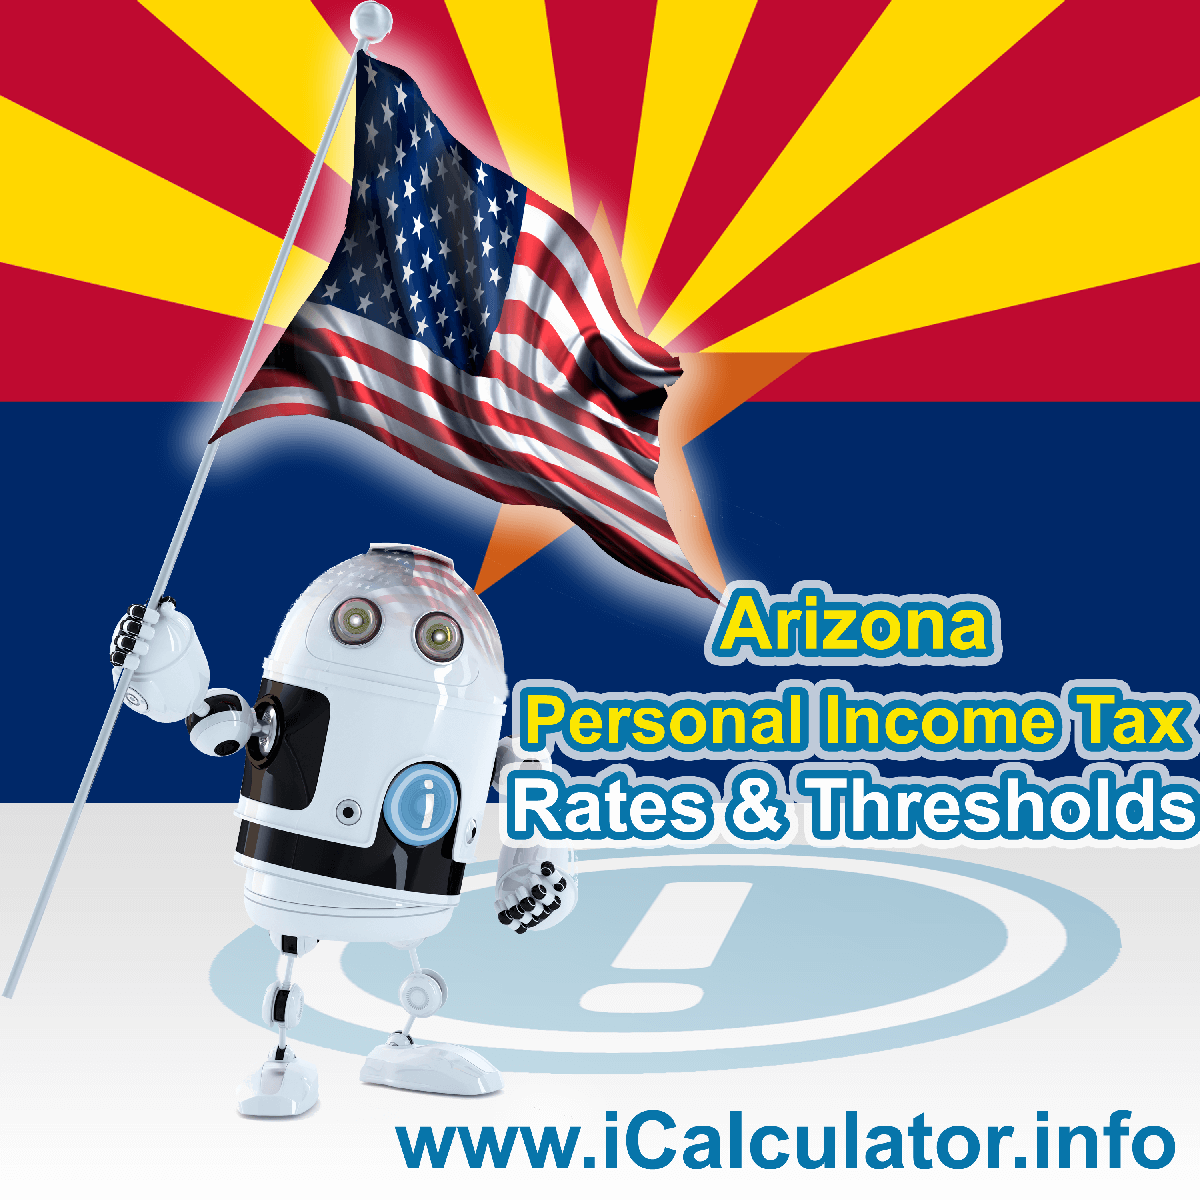 Arizona State Tax Tables 2017. This image displays details of the Arizona State Tax Tables for the 2017 tax return year which is provided in support of the 2017 US Tax Calculator